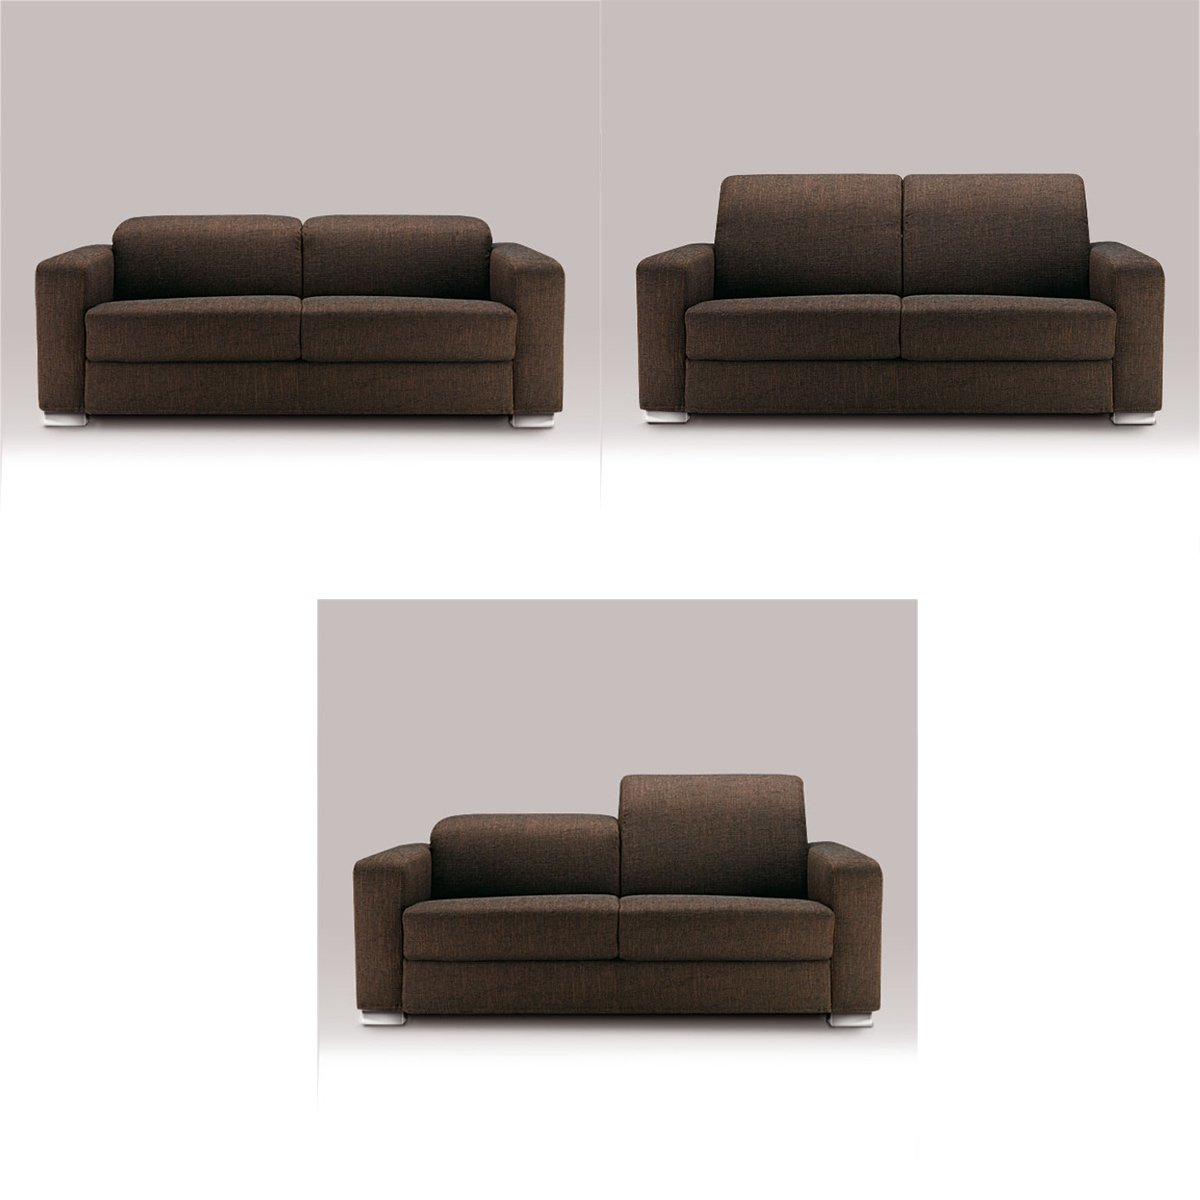 94 canape convertible couchage quotidien rapido. Black Bedroom Furniture Sets. Home Design Ideas